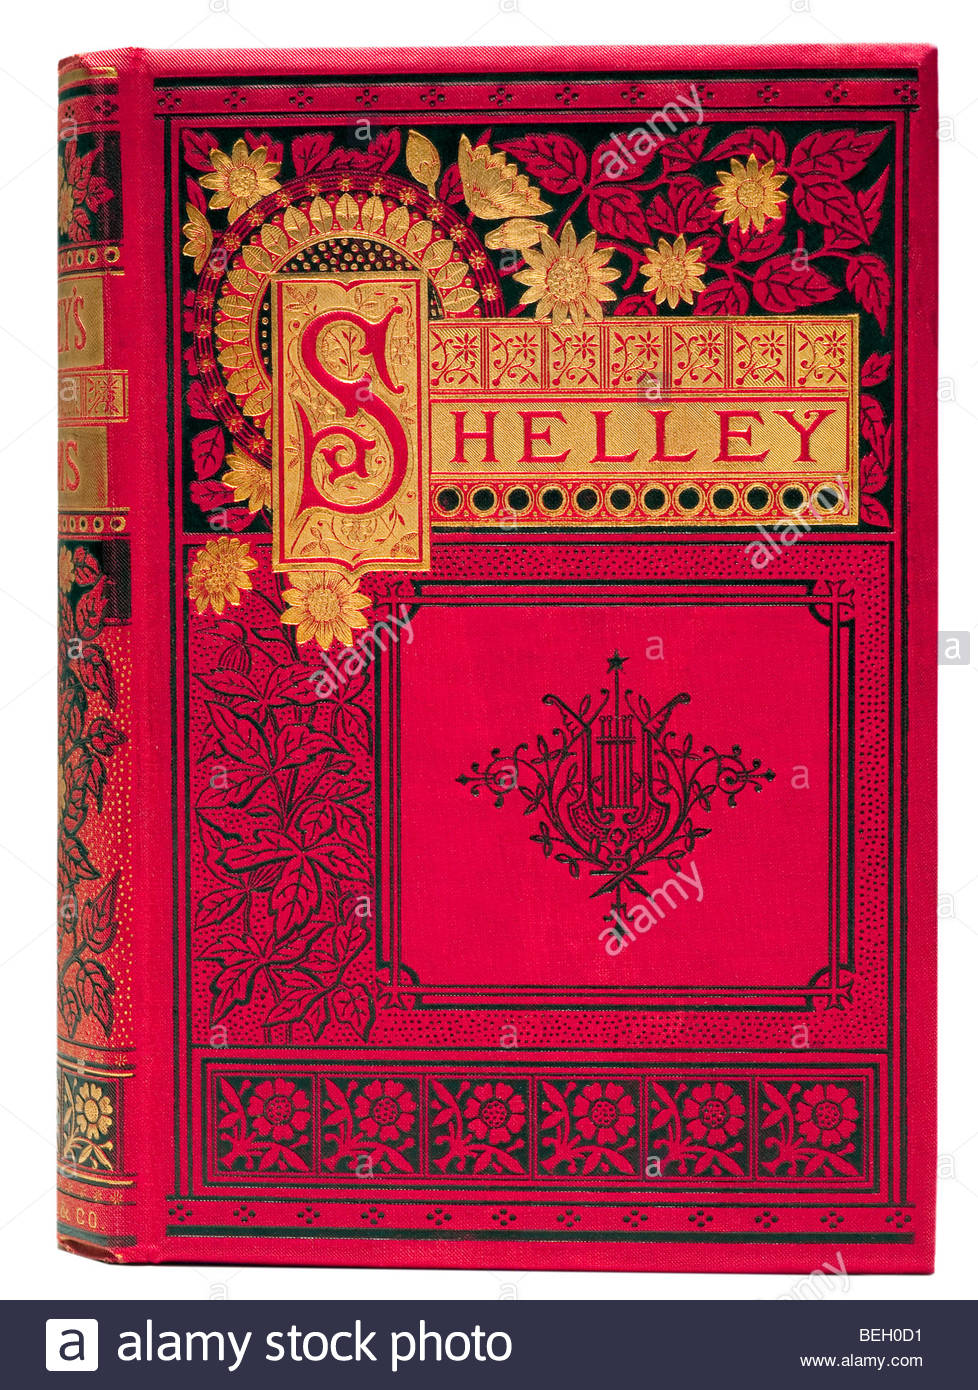 The Complete Works of Shelley Romantic Poet Poems Black Red Gilded cover 1878 Art Nouveau Rare Book Victorian Era - Stock Image